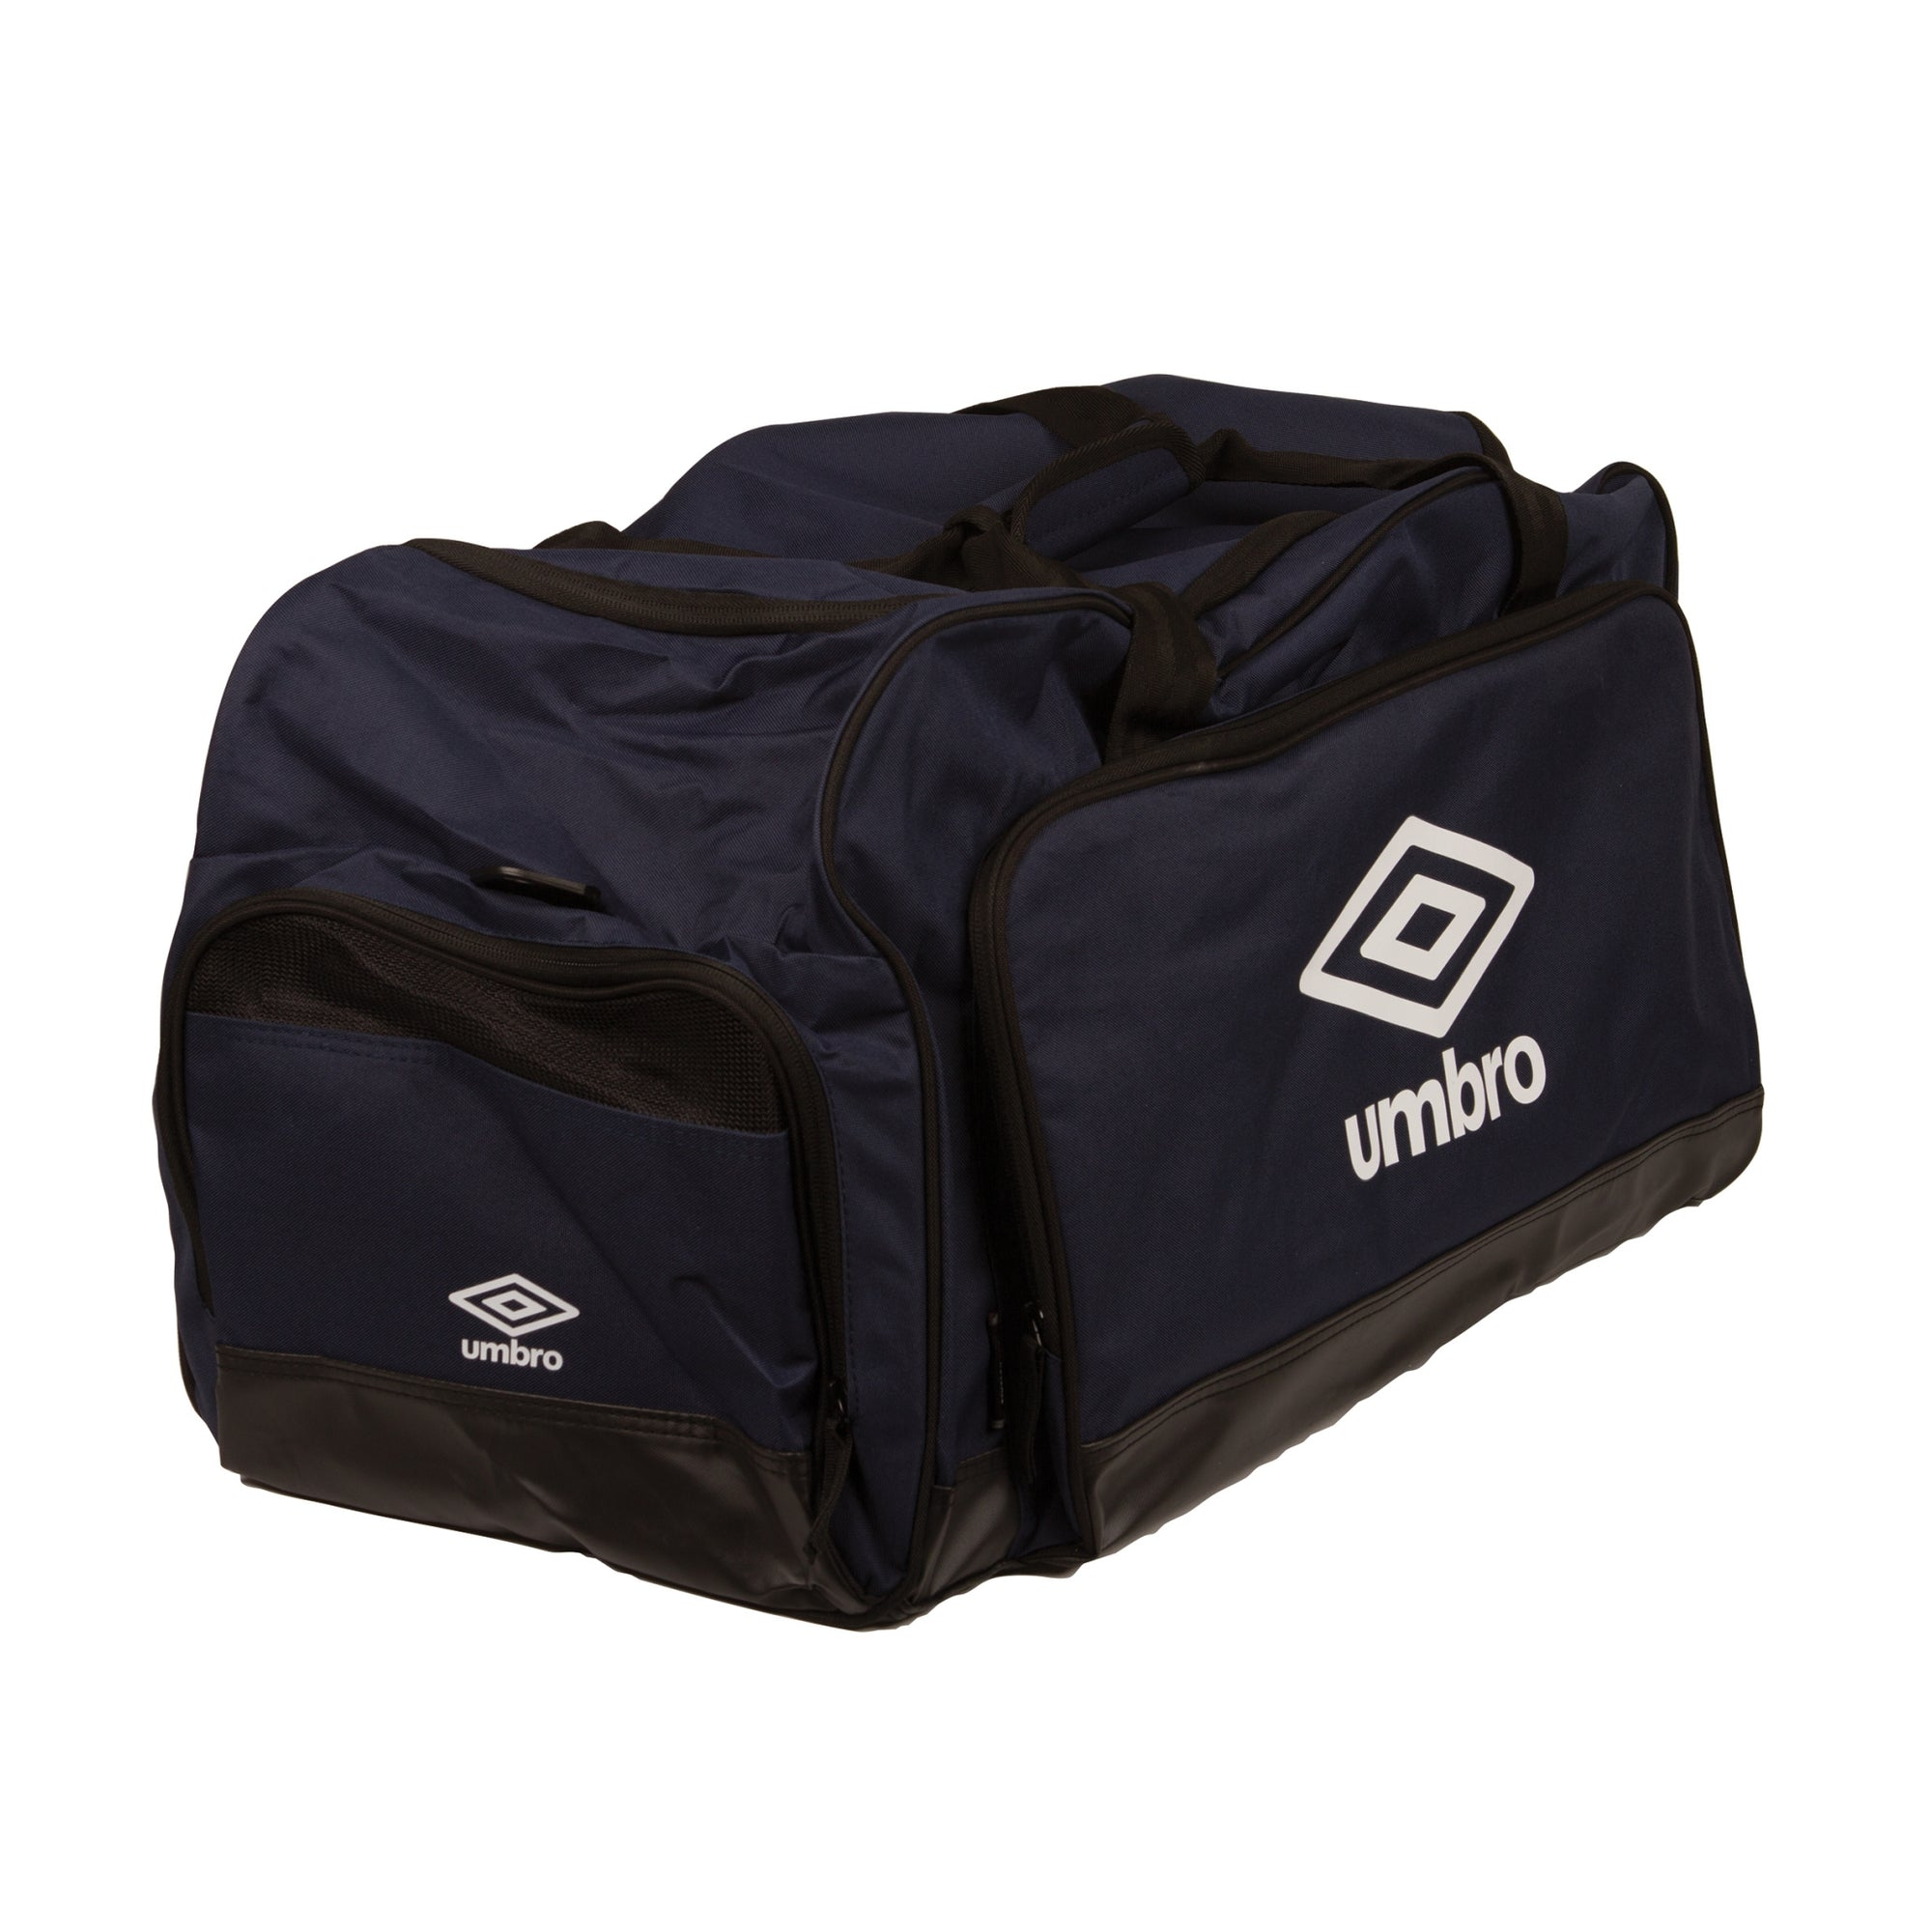 Umbro Large Holdall - Dark Navy/White